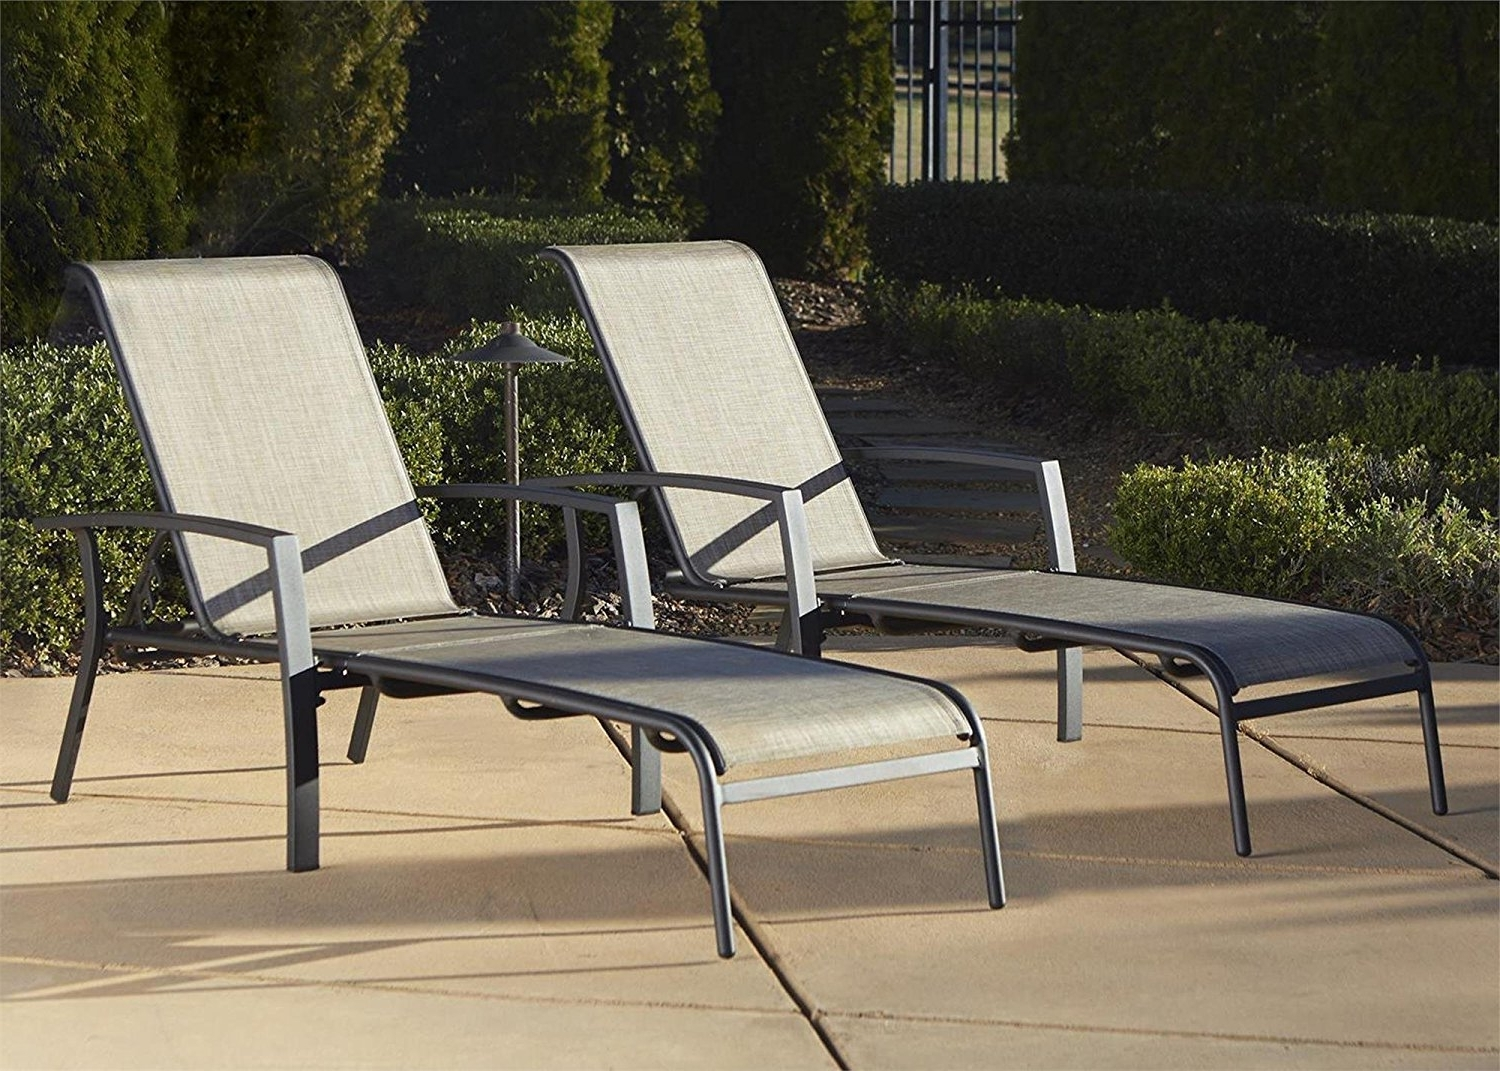 Brown Outdoor Chaise Lounge Chairs Pertaining To Widely Used Amazon: Cosco Outdoor Adjustable Aluminum Chaise Lounge Chair (View 3 of 15)